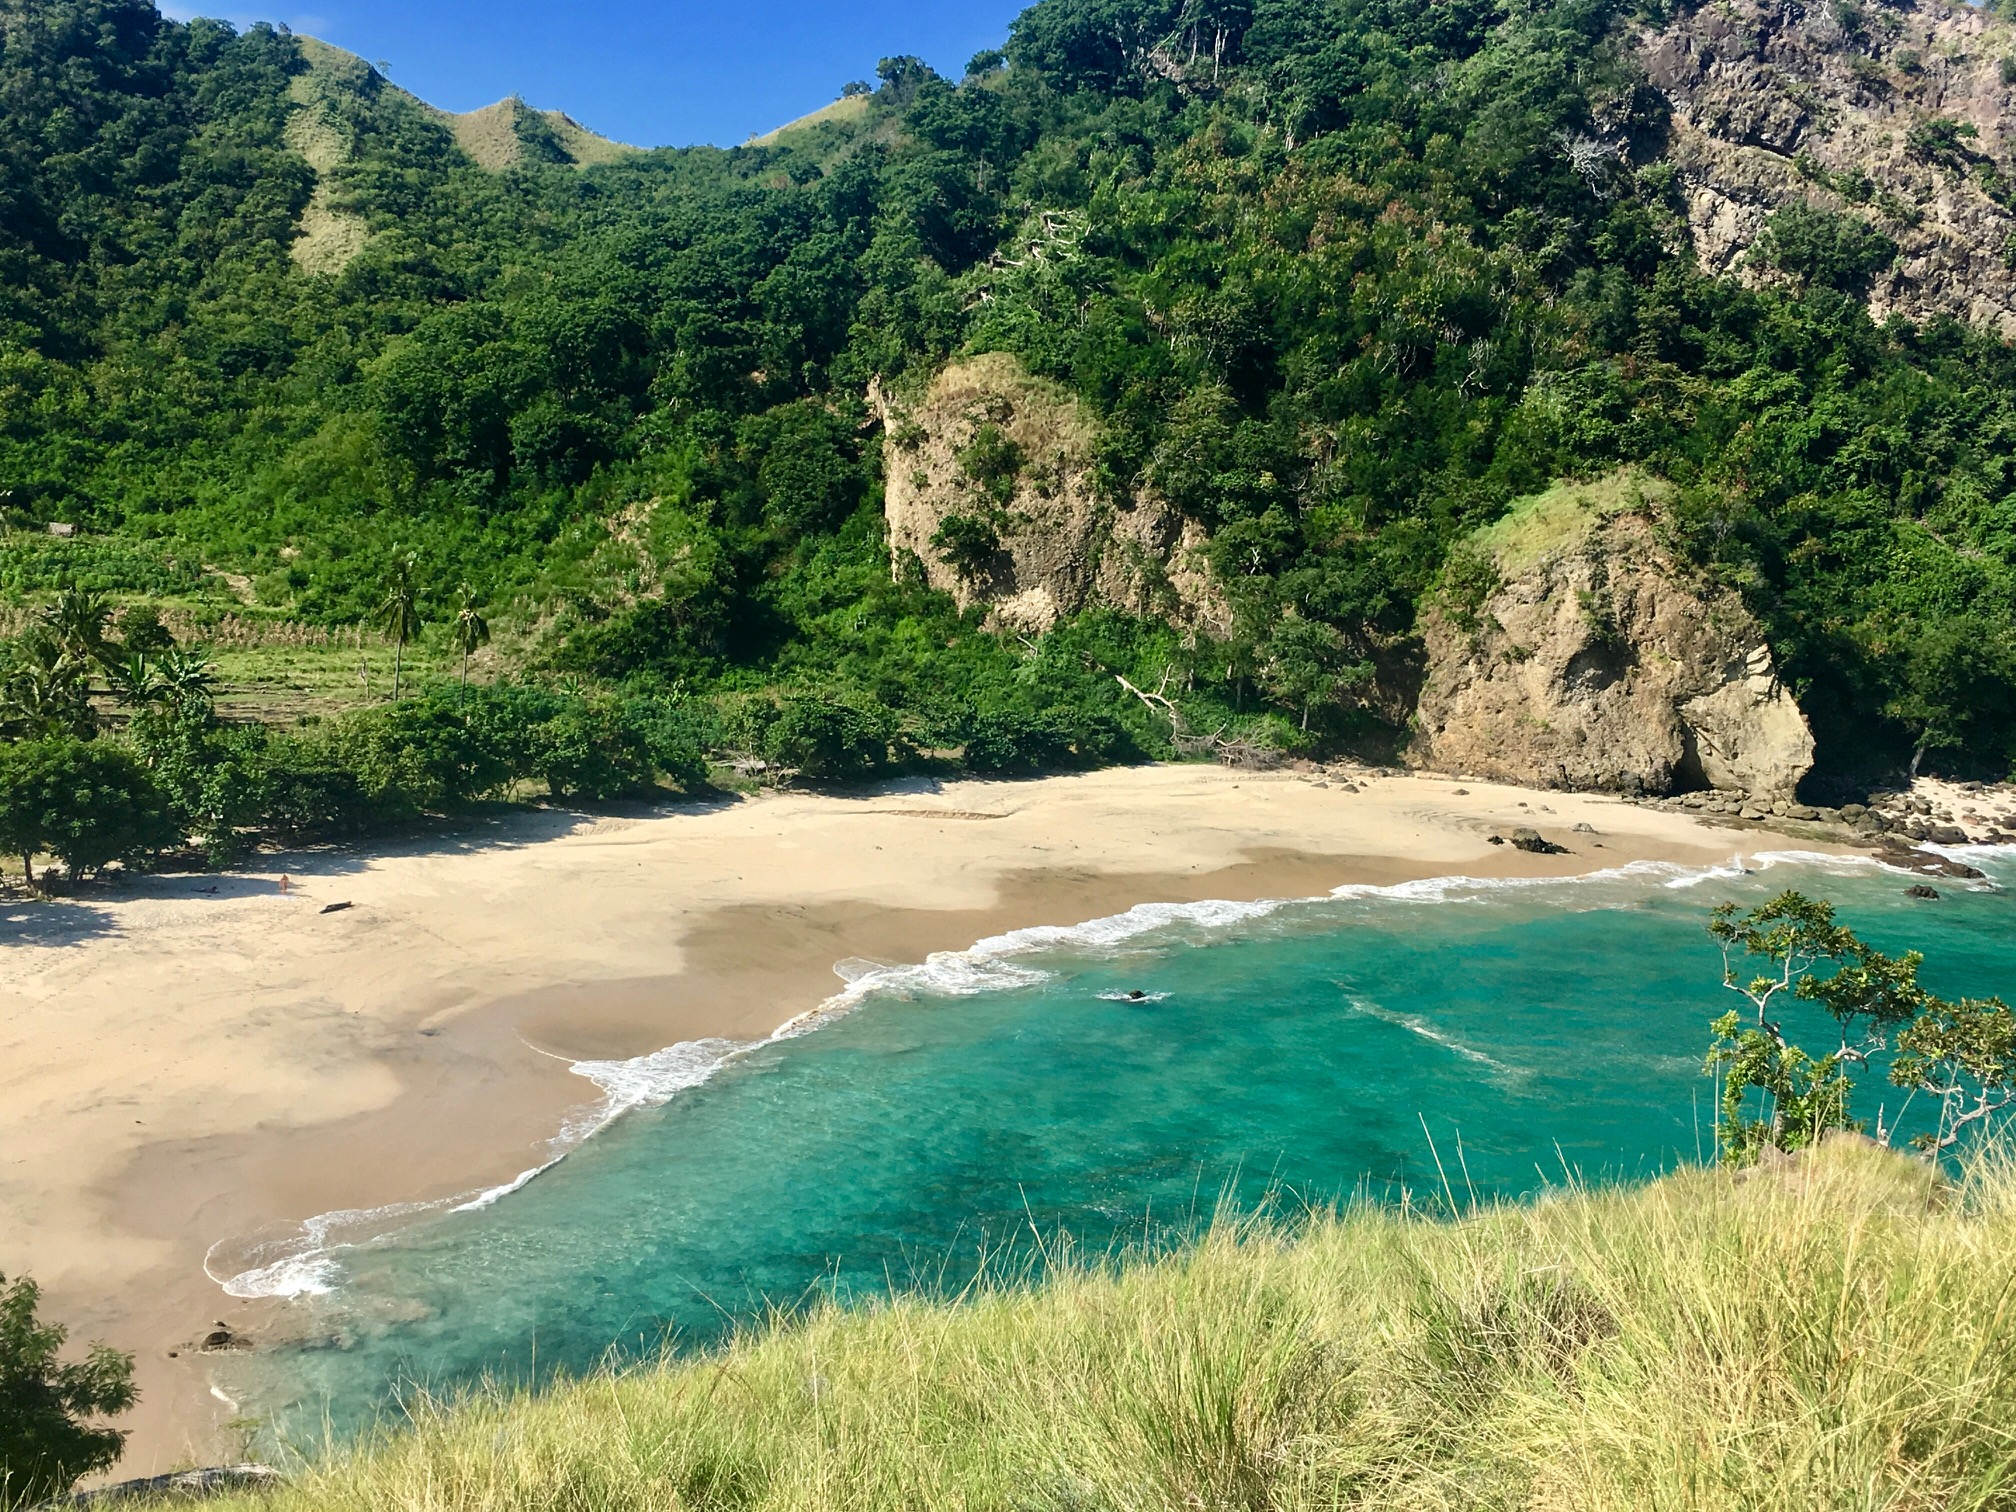 Flores_Koka_Beach_Maumere_Kelimutu_Bali_Indonesia_Solo_Trip_Travel_Indian_Blog